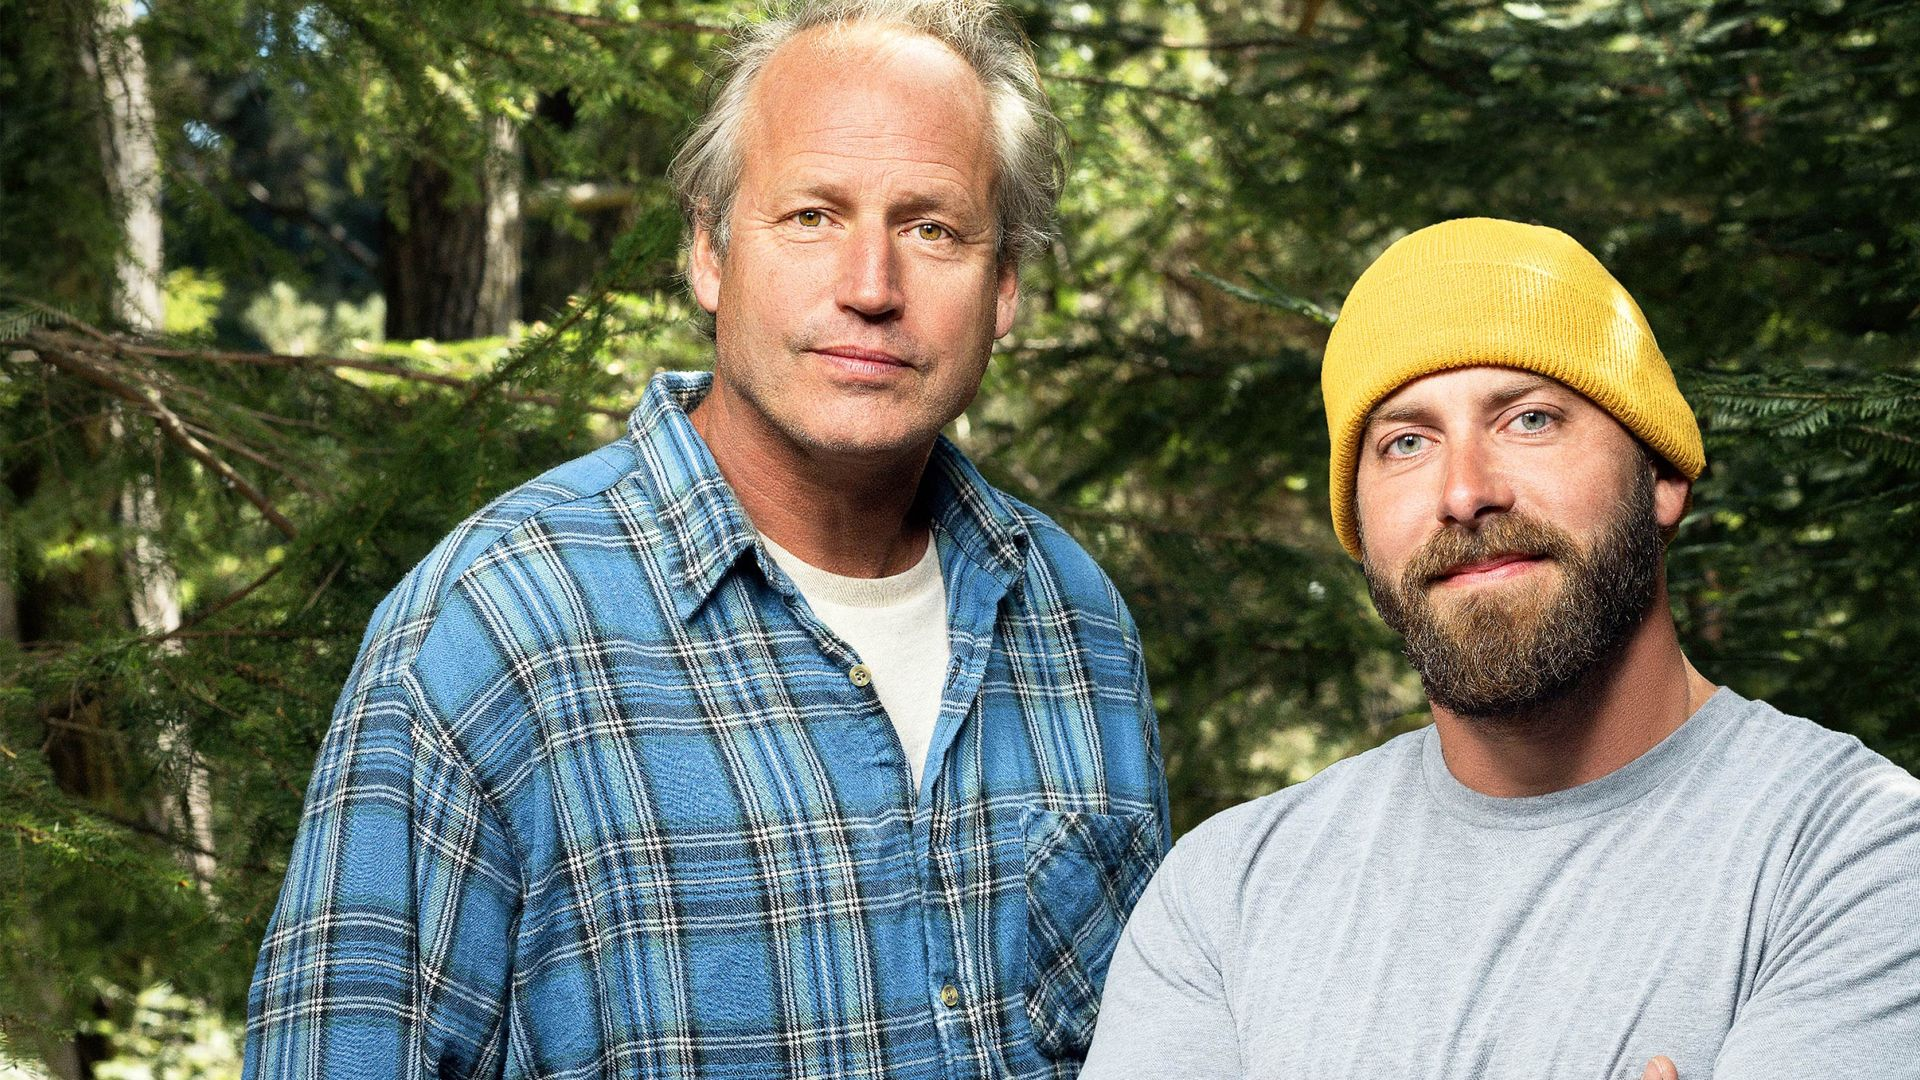 The Treehouse Guys - Watch Episodes on DIY or Streaming